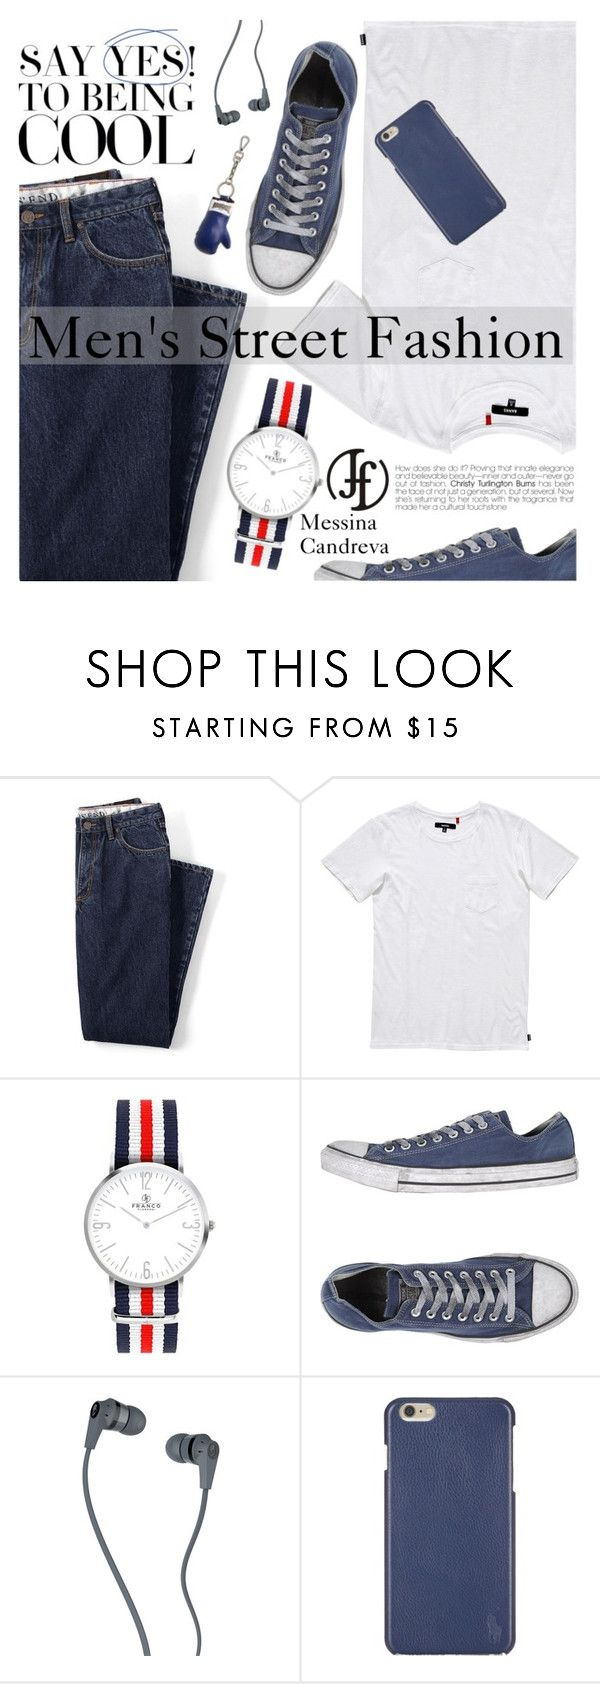 """Men's Street Fashion"" by pokadoll ❤ liked on Polyvore featuring Lands' End, Banks, Converse, Skullcandy, Polo Ralph Lauren, Alexander McQueen, men's fashion, menswear and francoflorenzi"